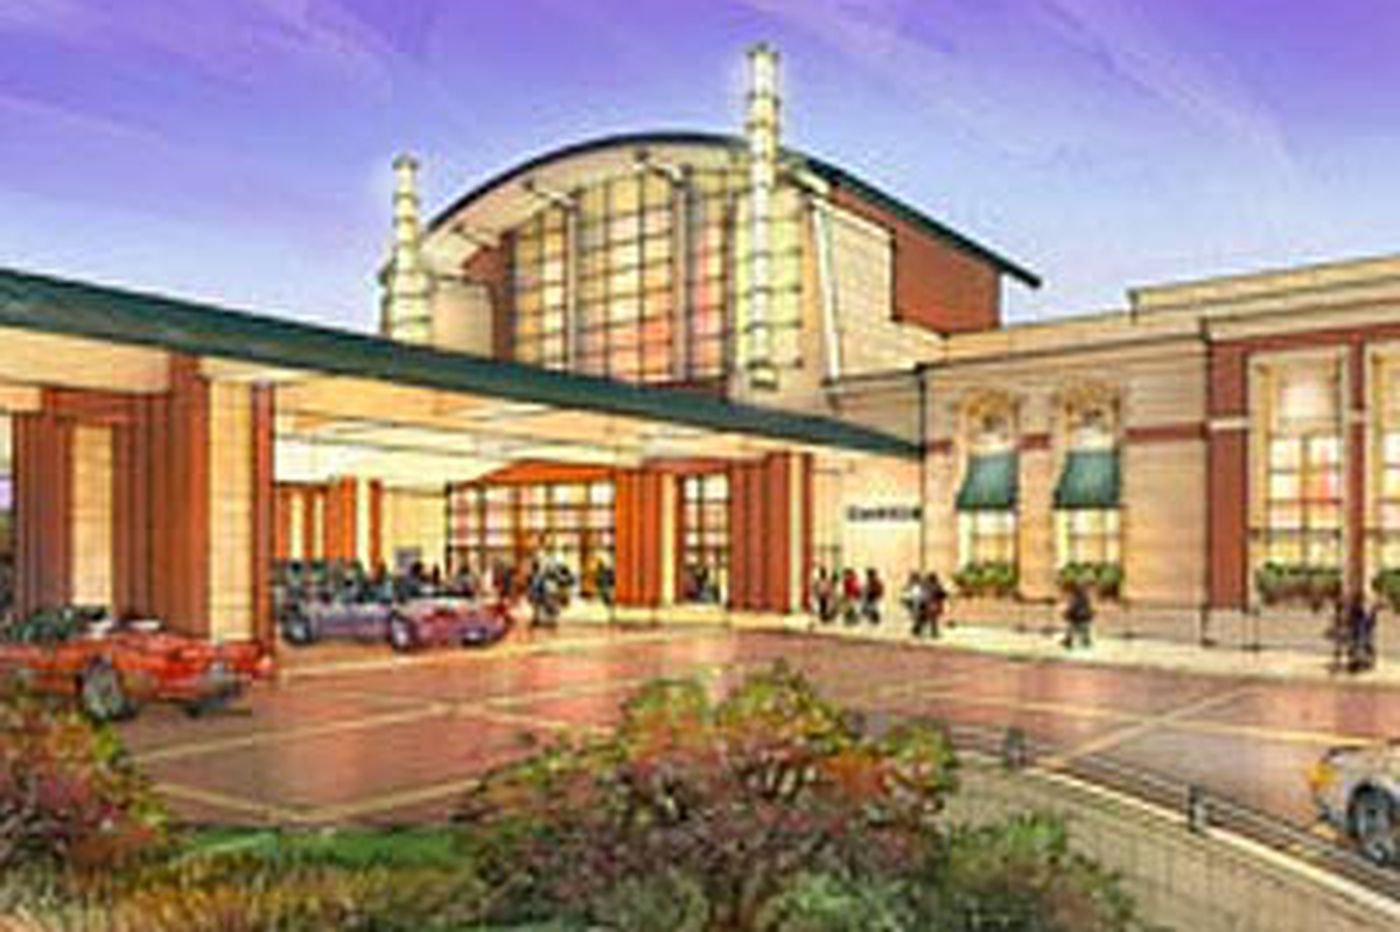 Pa. revokes Foxwoods' casino license